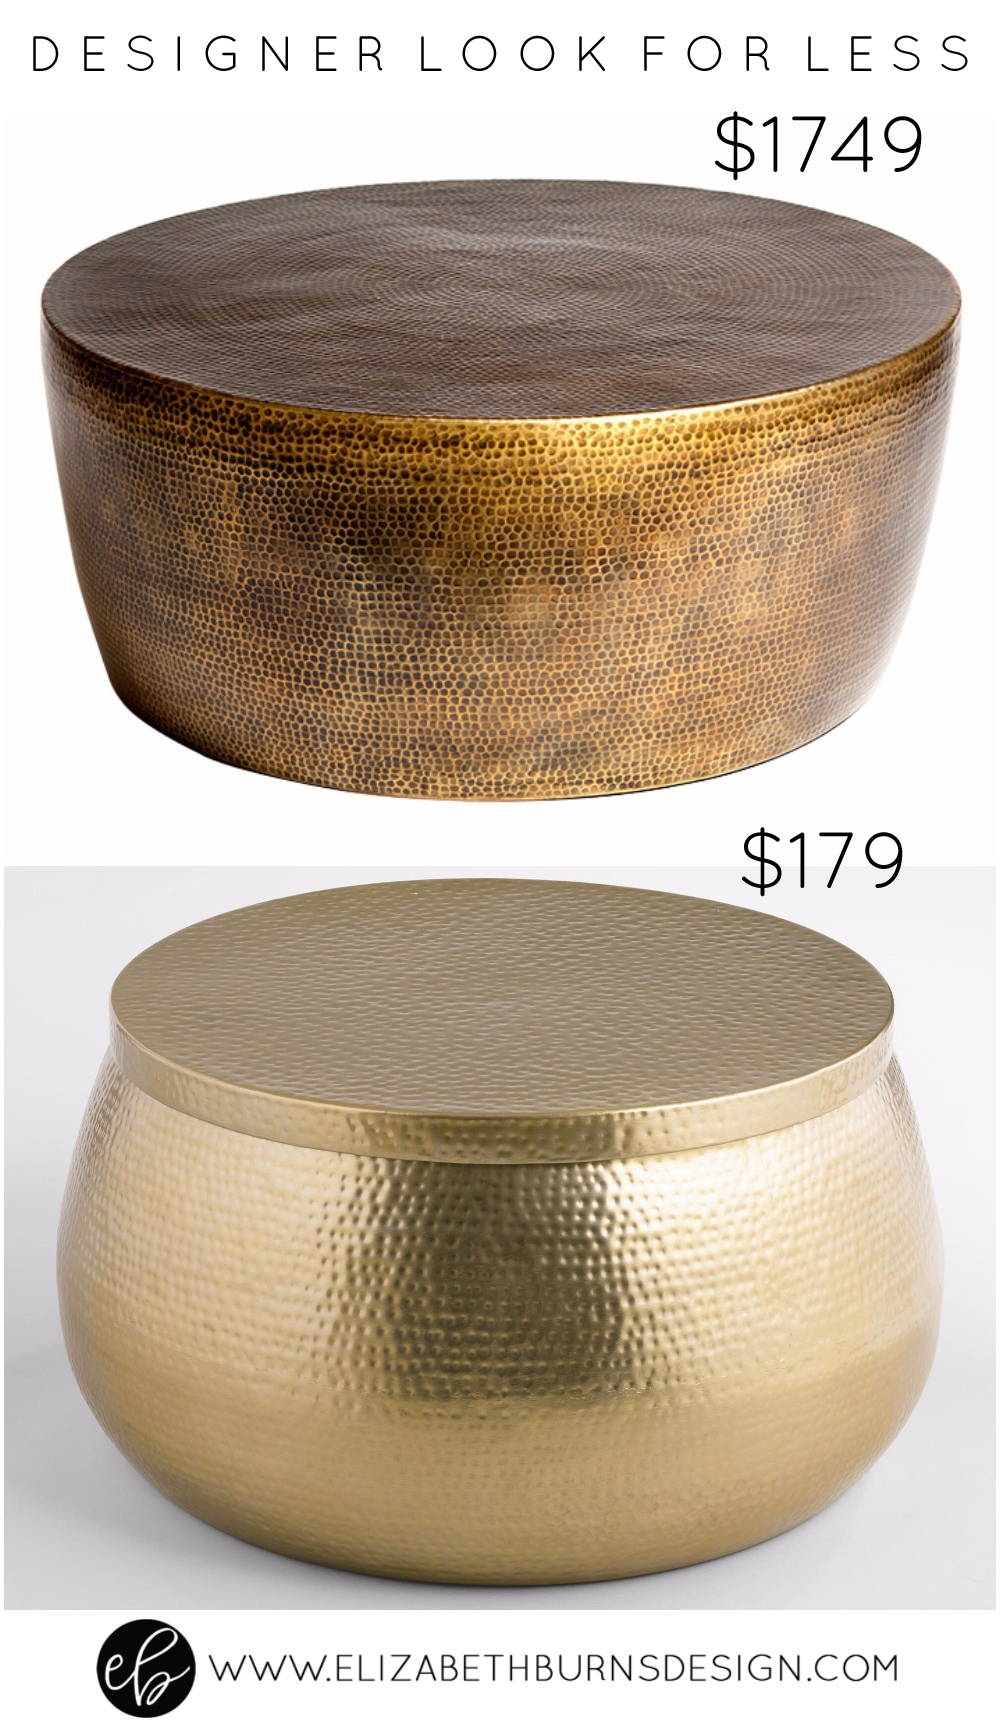 Elizabeth Burns Design | Designer Look for Less - Gold Hammered Coffee or Cocktail Table: high end and low end